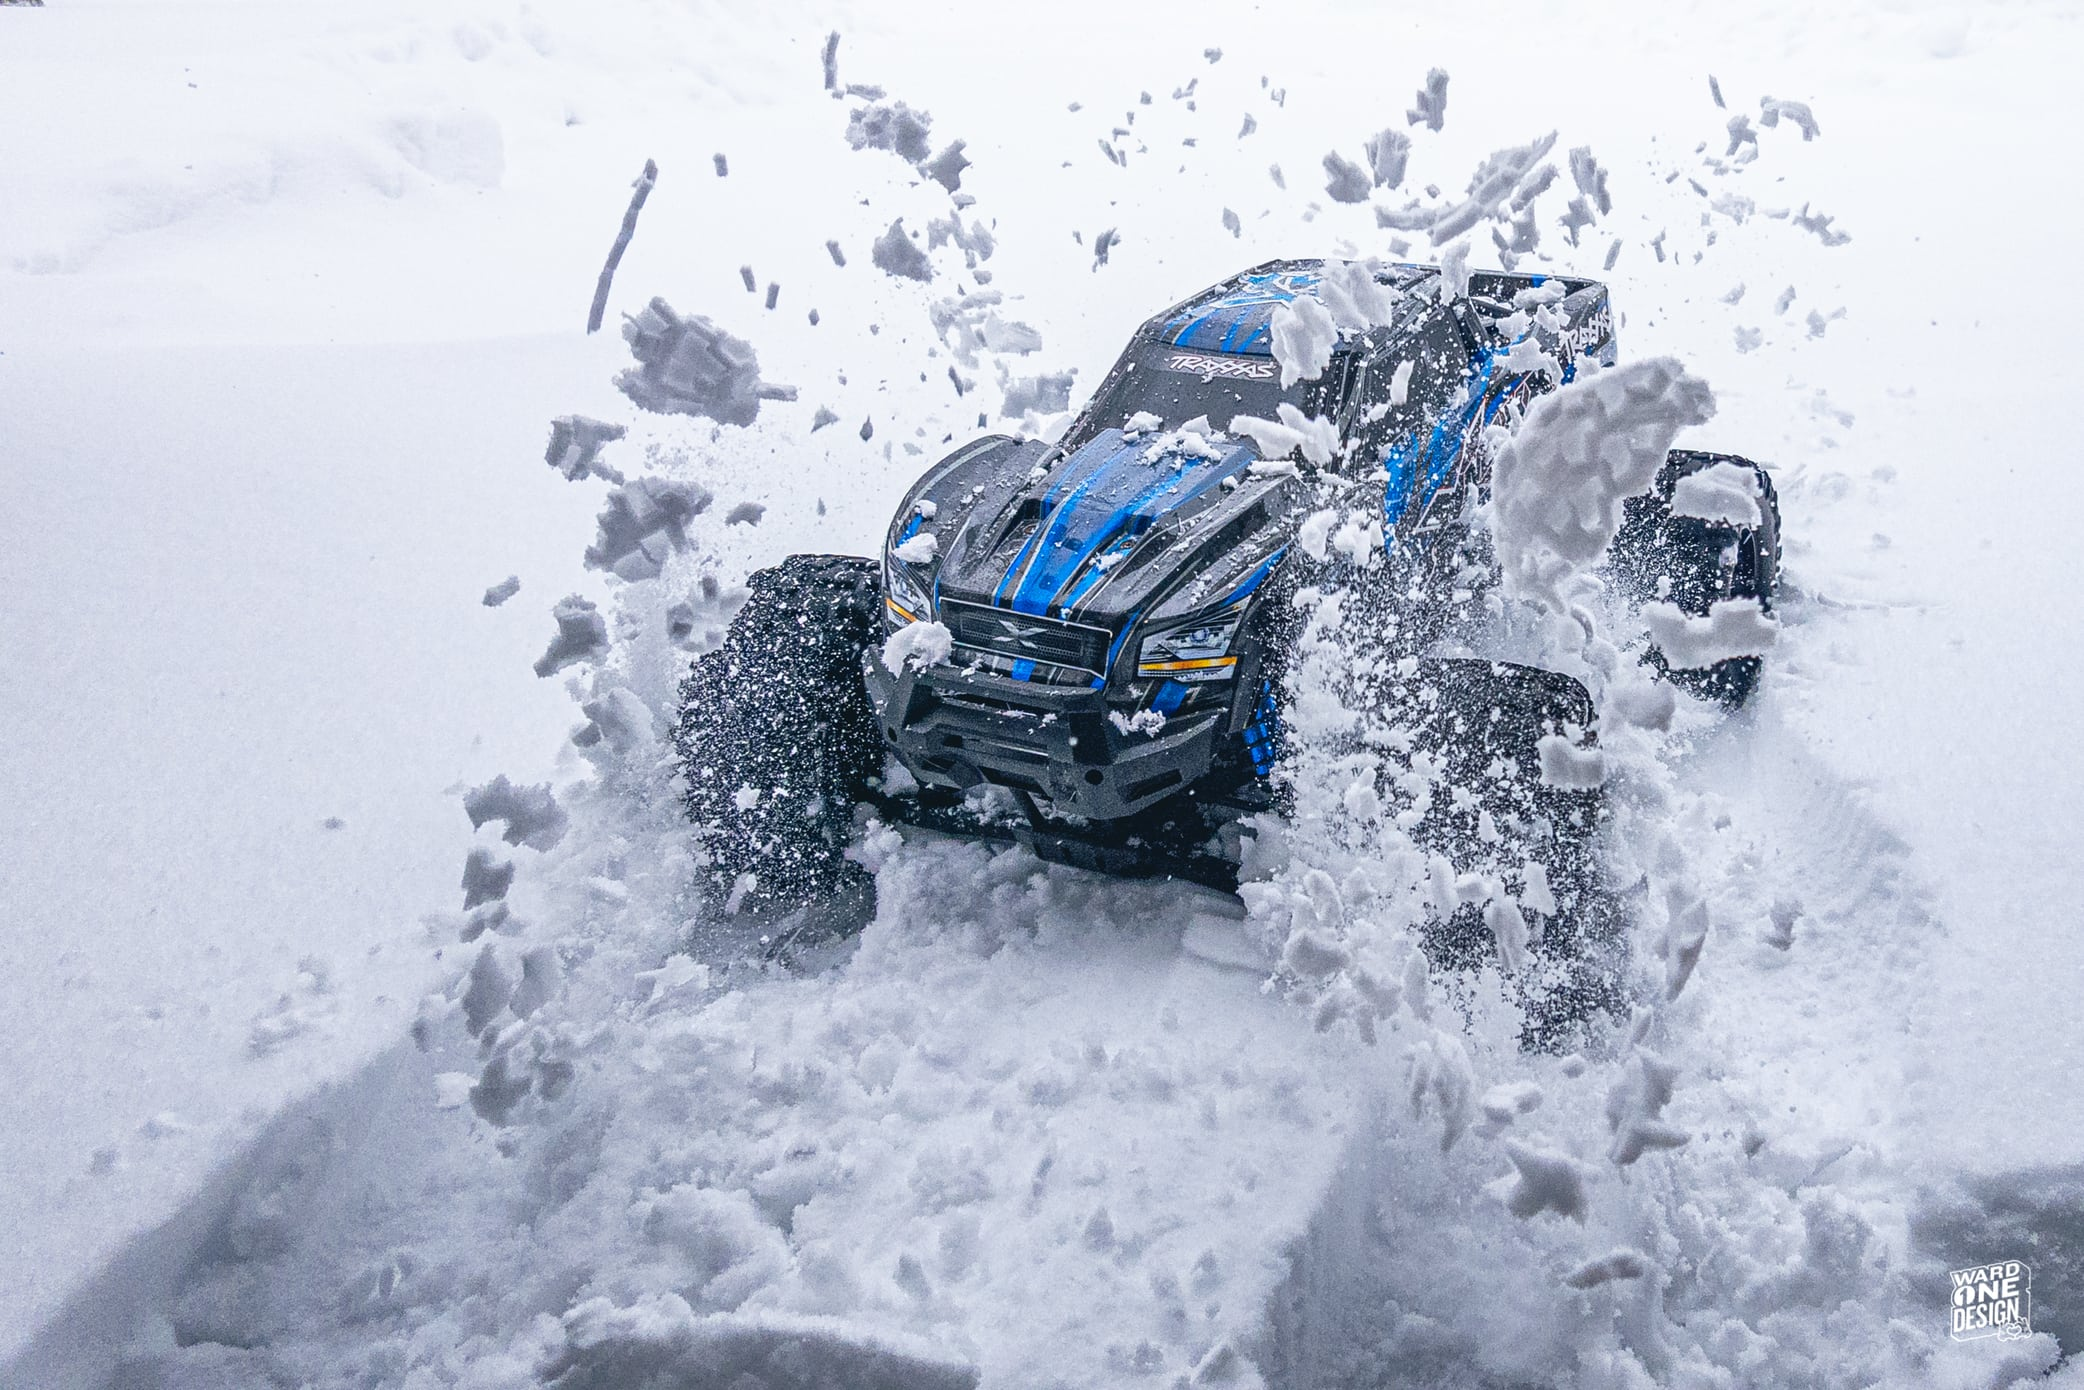 X-maxx Winter 2021